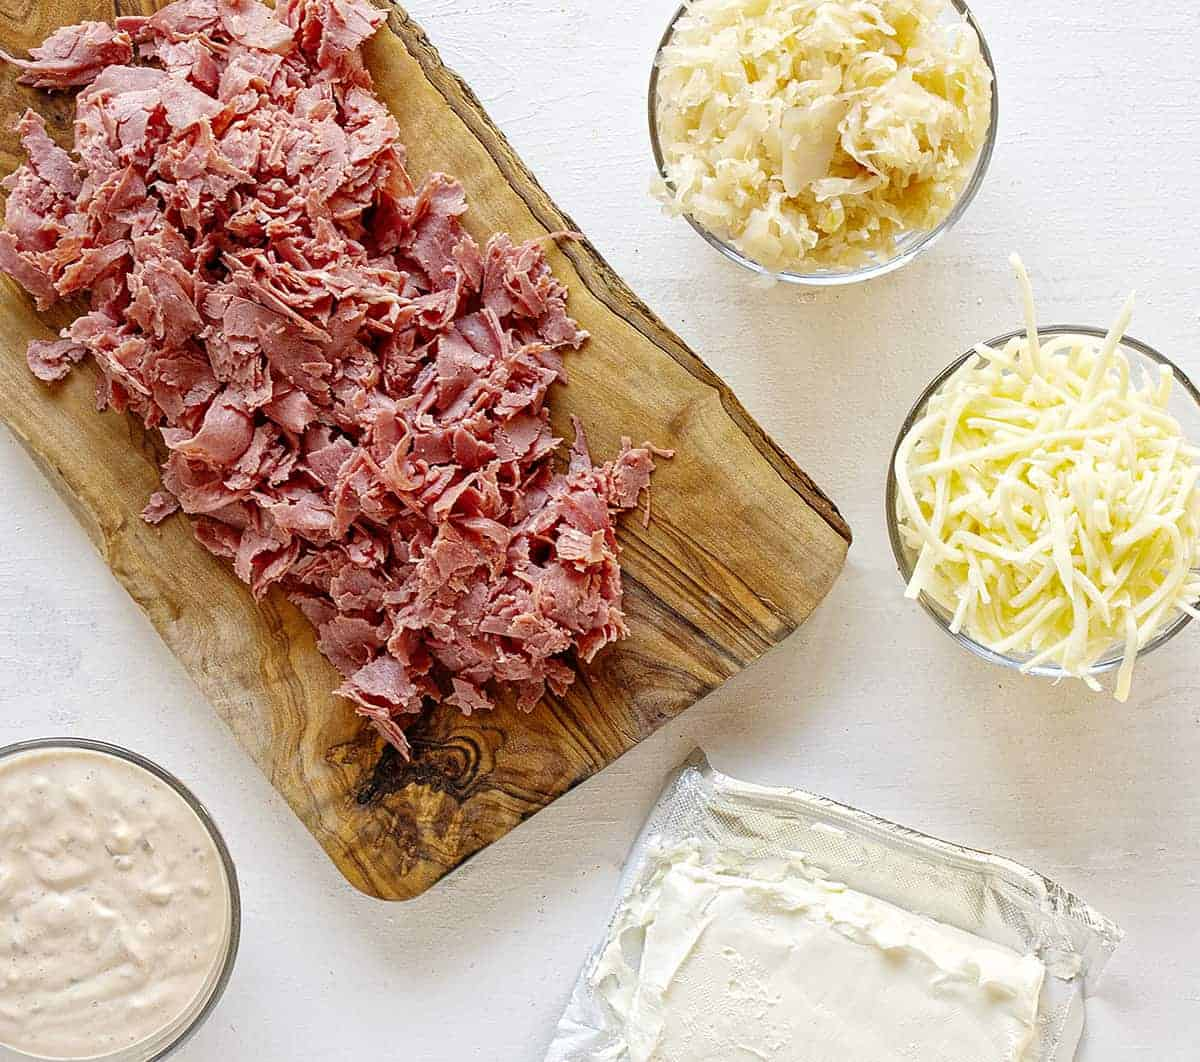 Ingredients for Reuben Dip